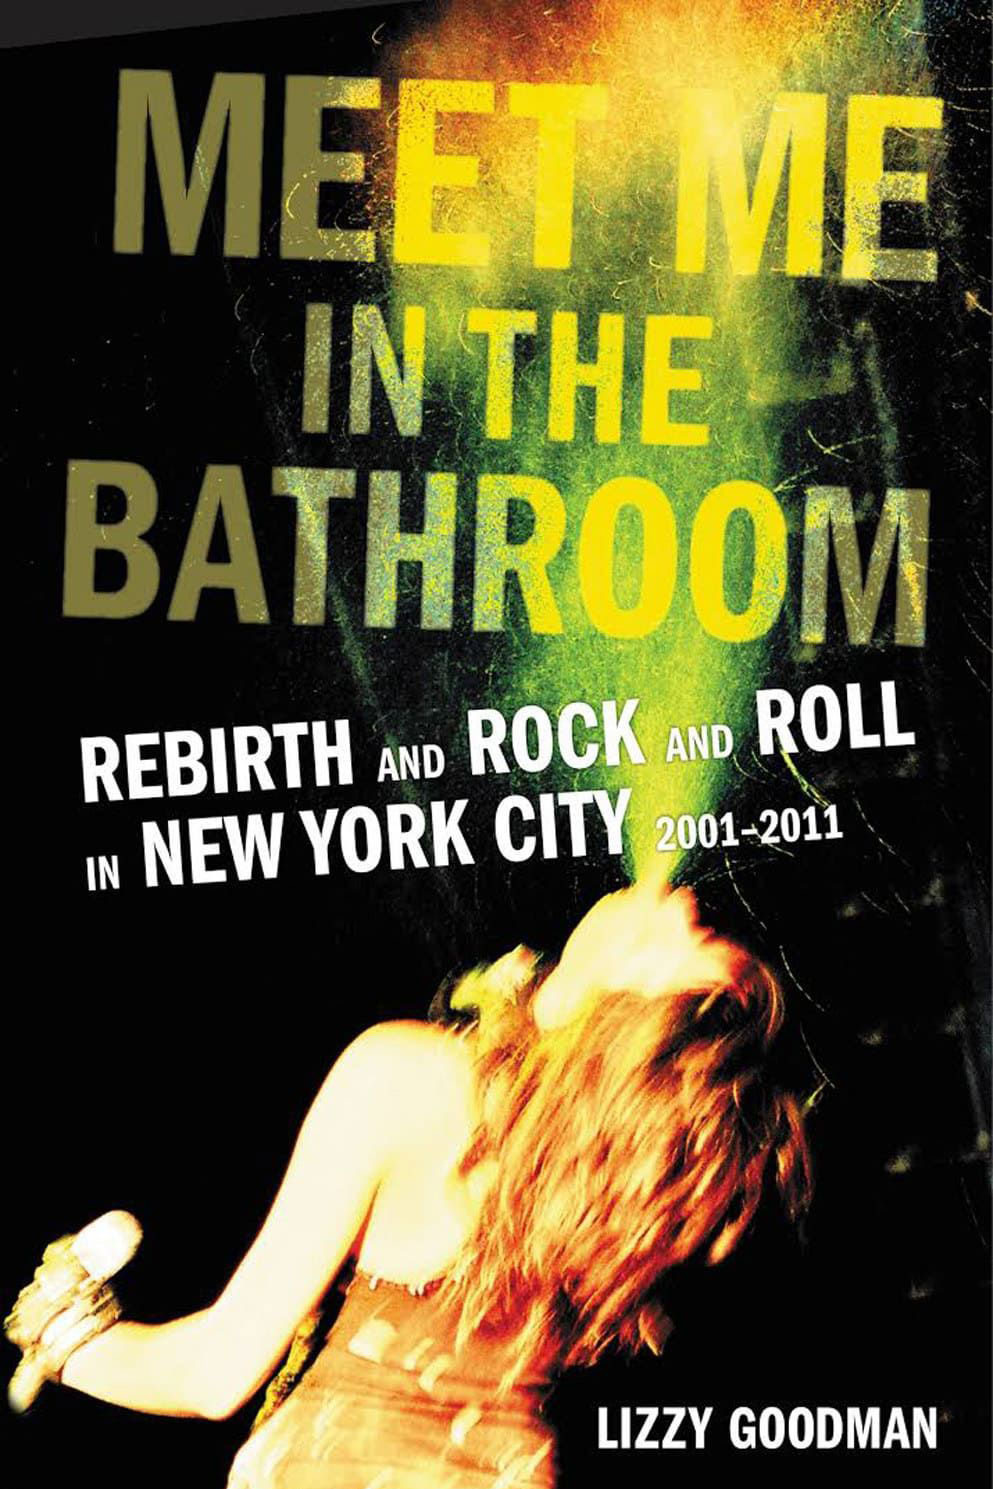 <em>Meet Me in the Bathroom</em> by Lizzy Goodman